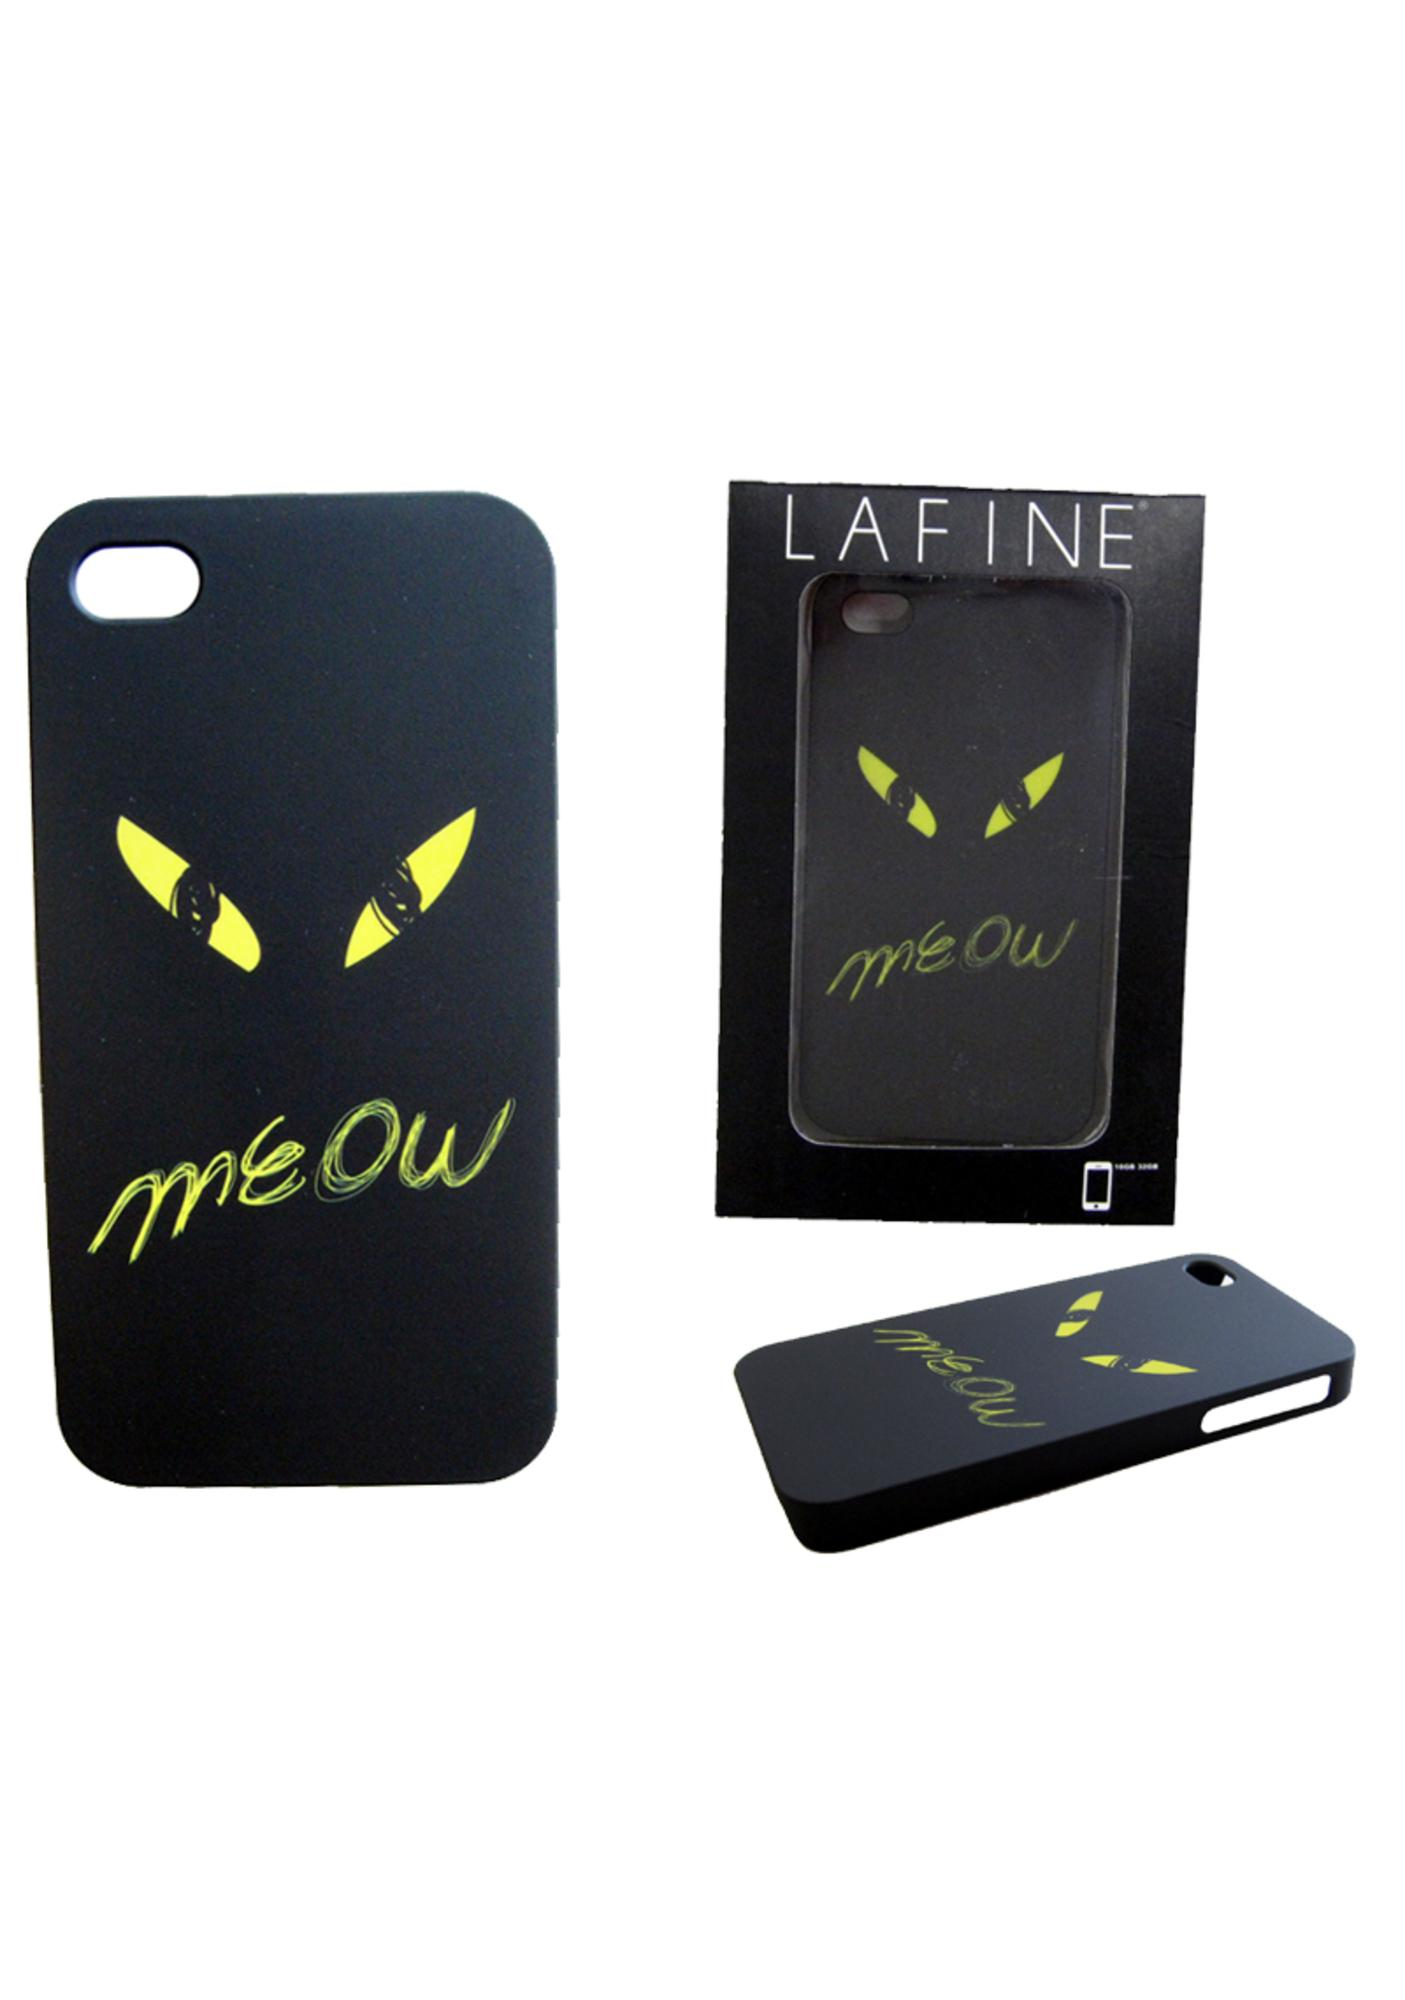 Lafine Meow iPhone Case